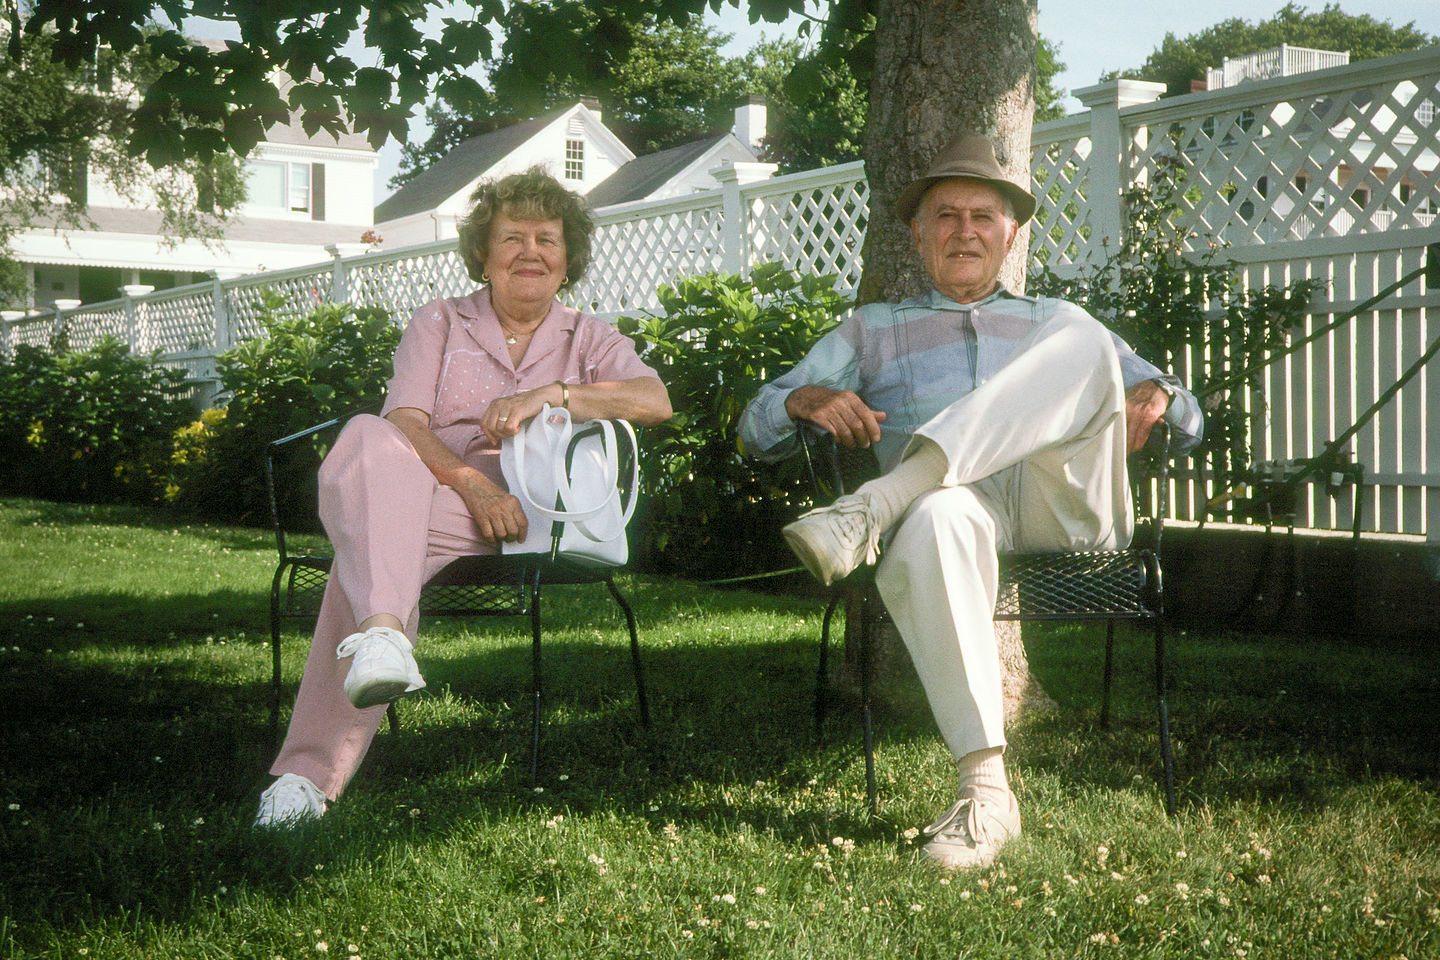 Hedy and Al on Lawn of Daggett House